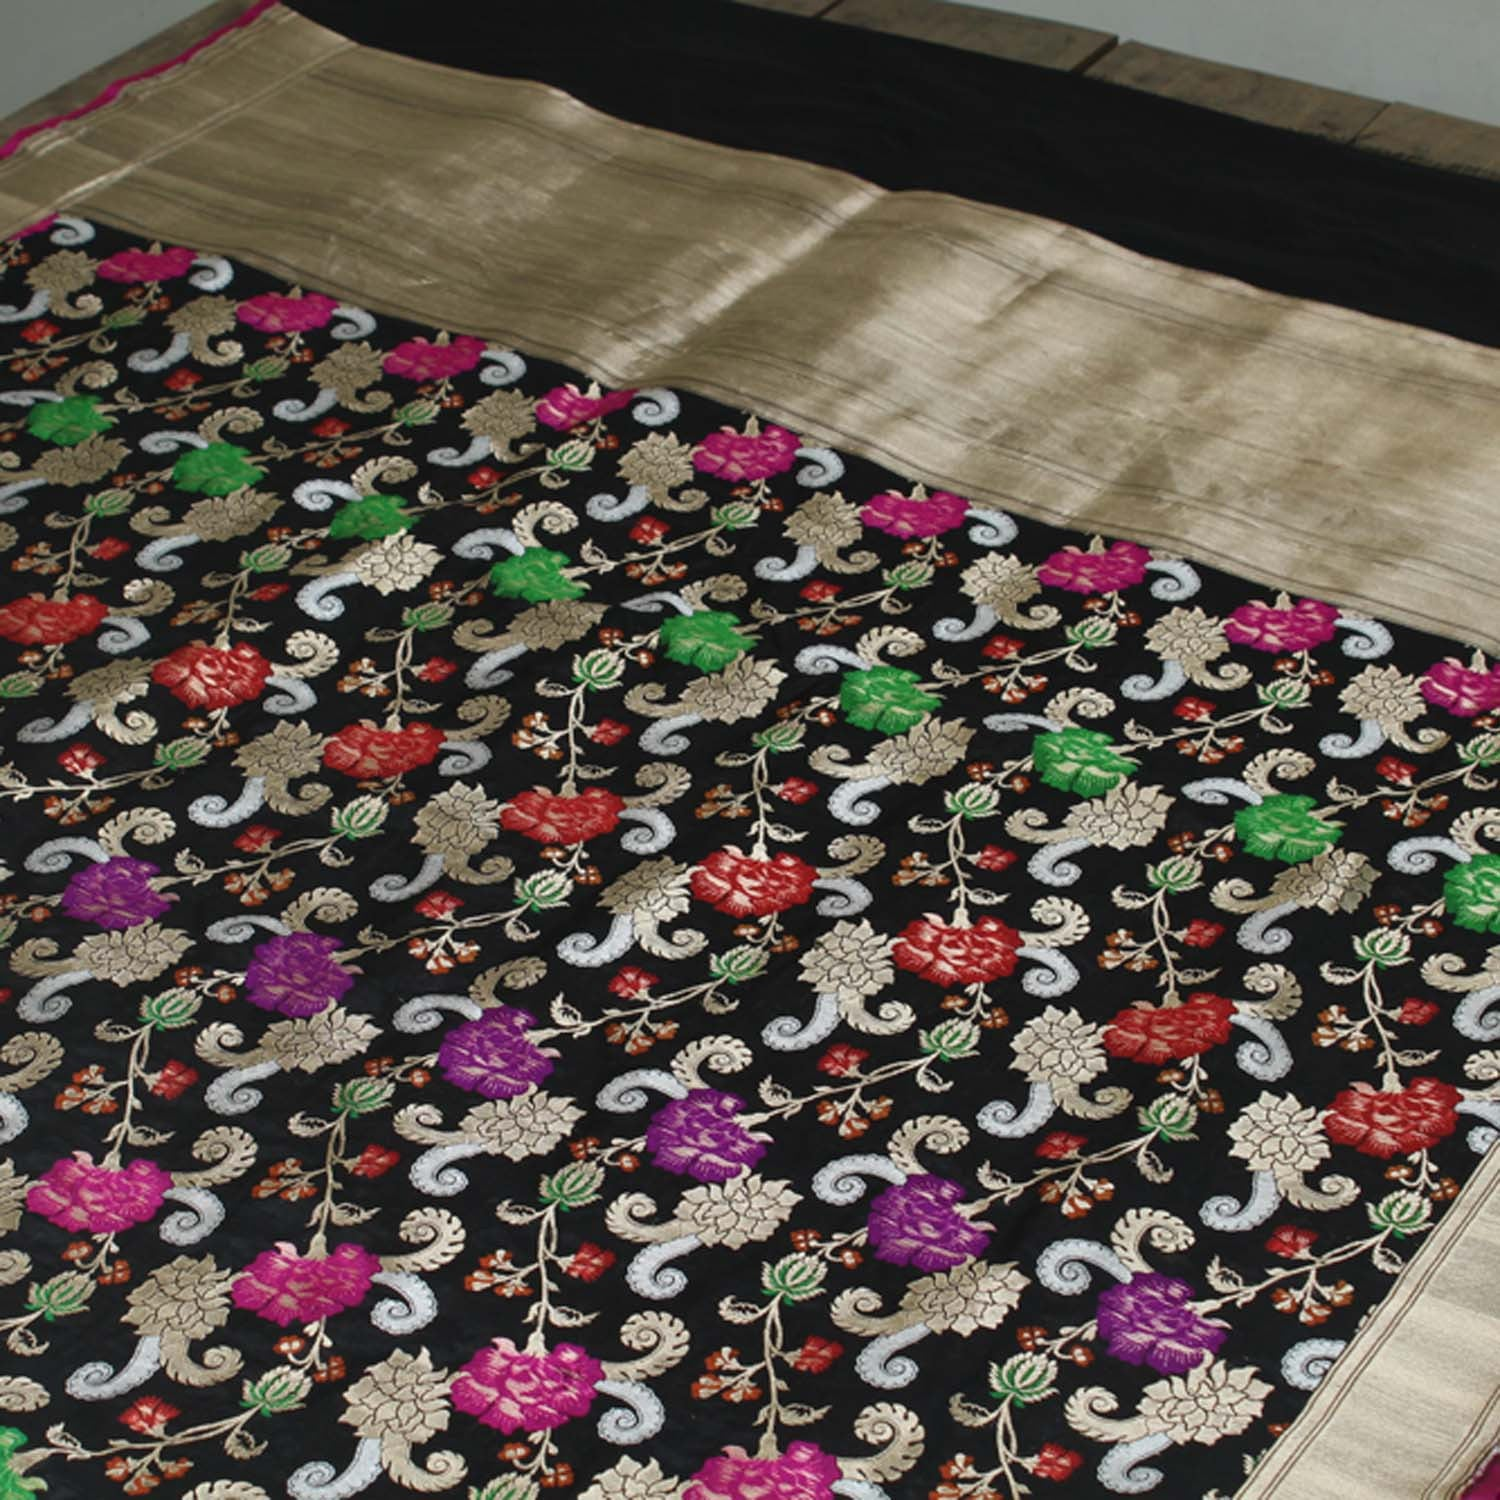 Black Pure Katan Silk Banarasi Handloom Saree - Tilfi - 3